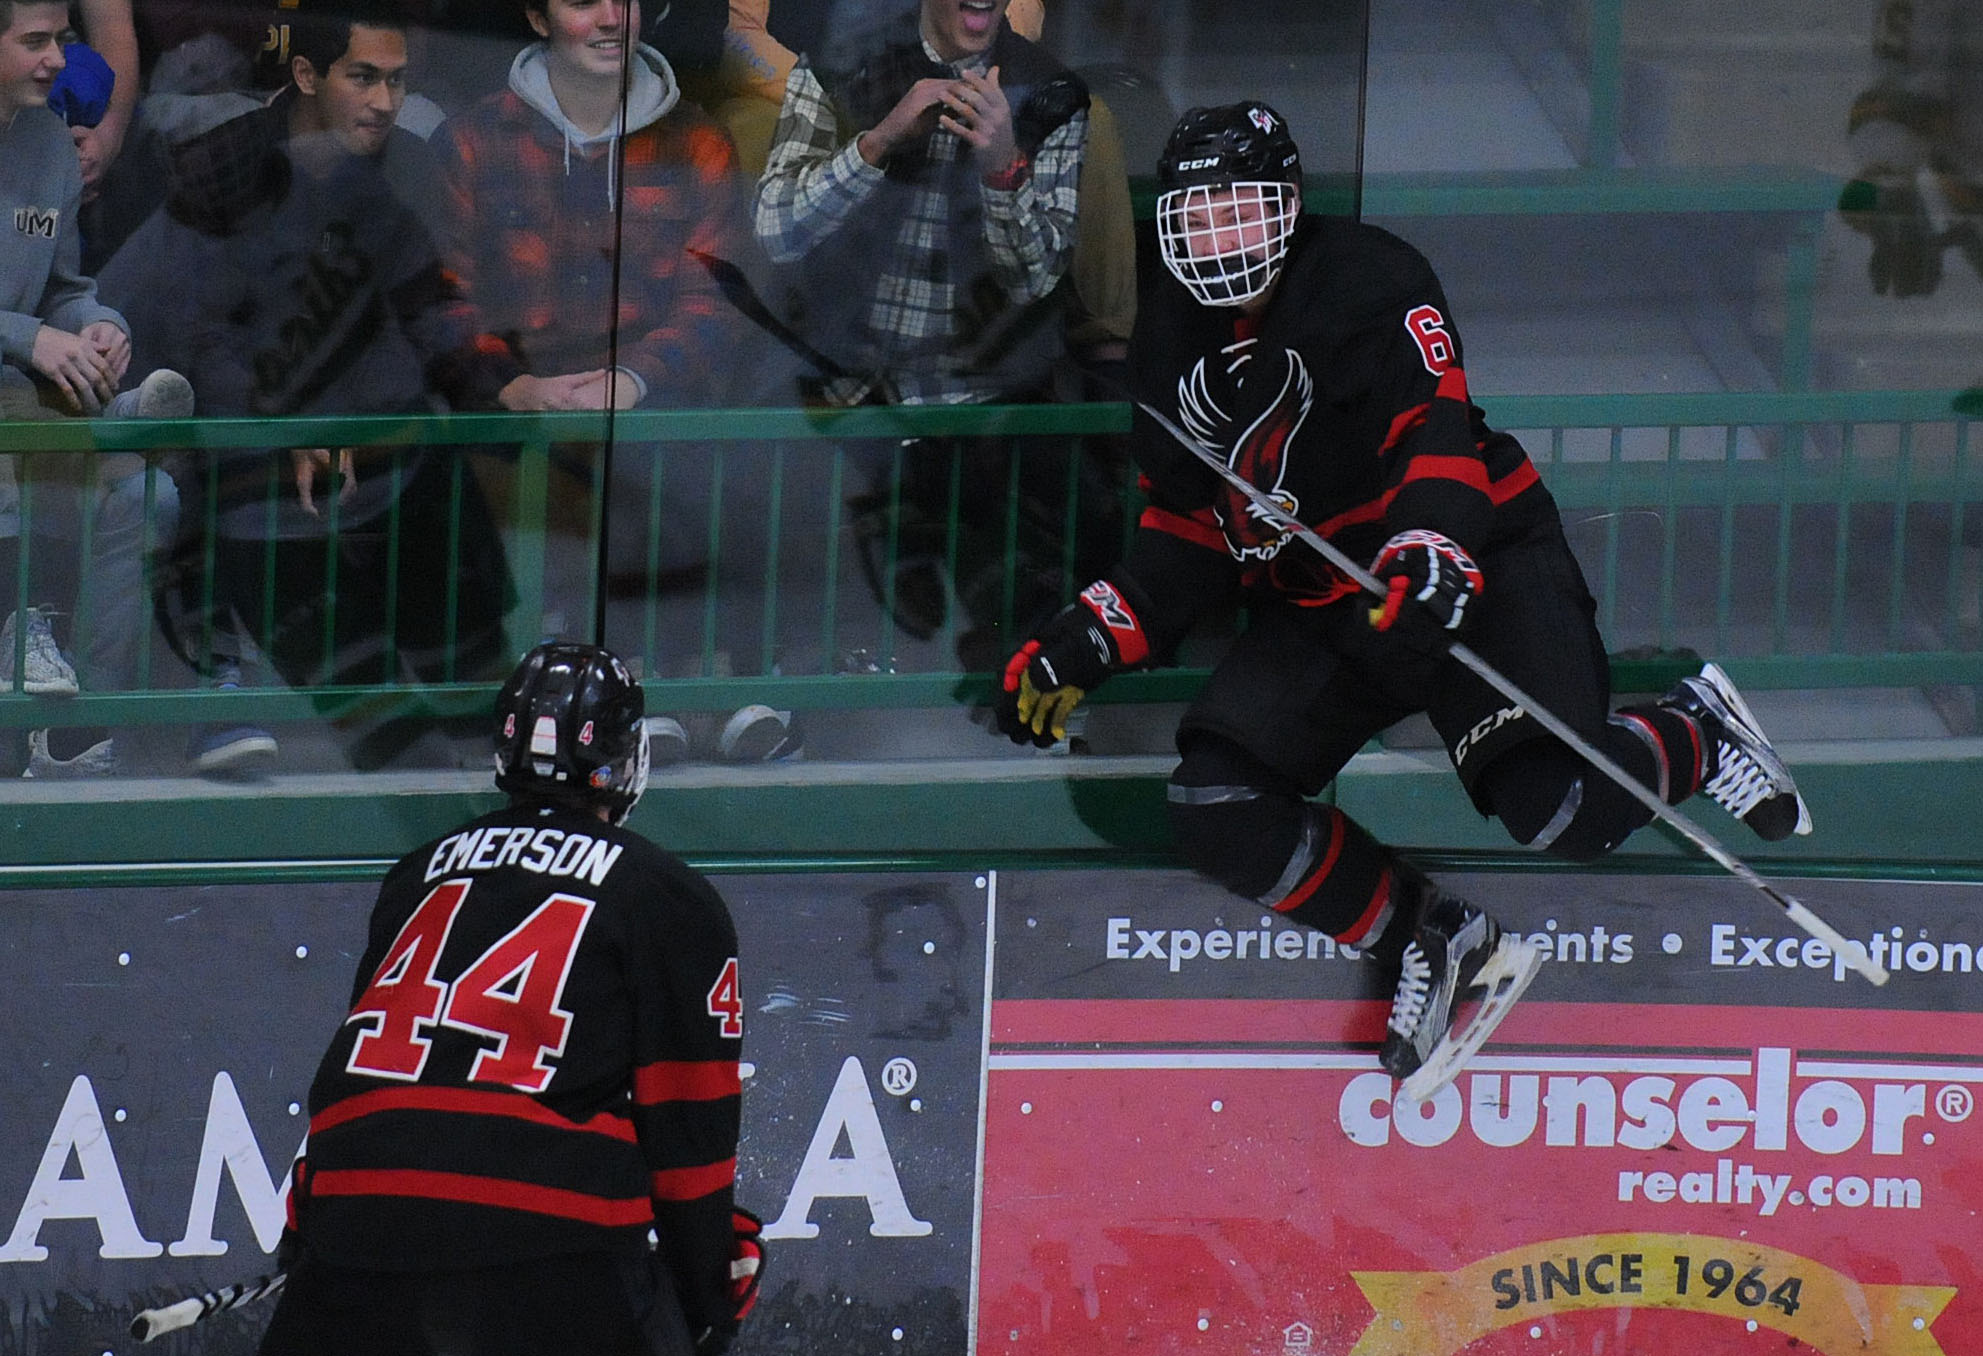 MN H.S.: Graham's Goals Guide Eden Prairie Over Rival Edina